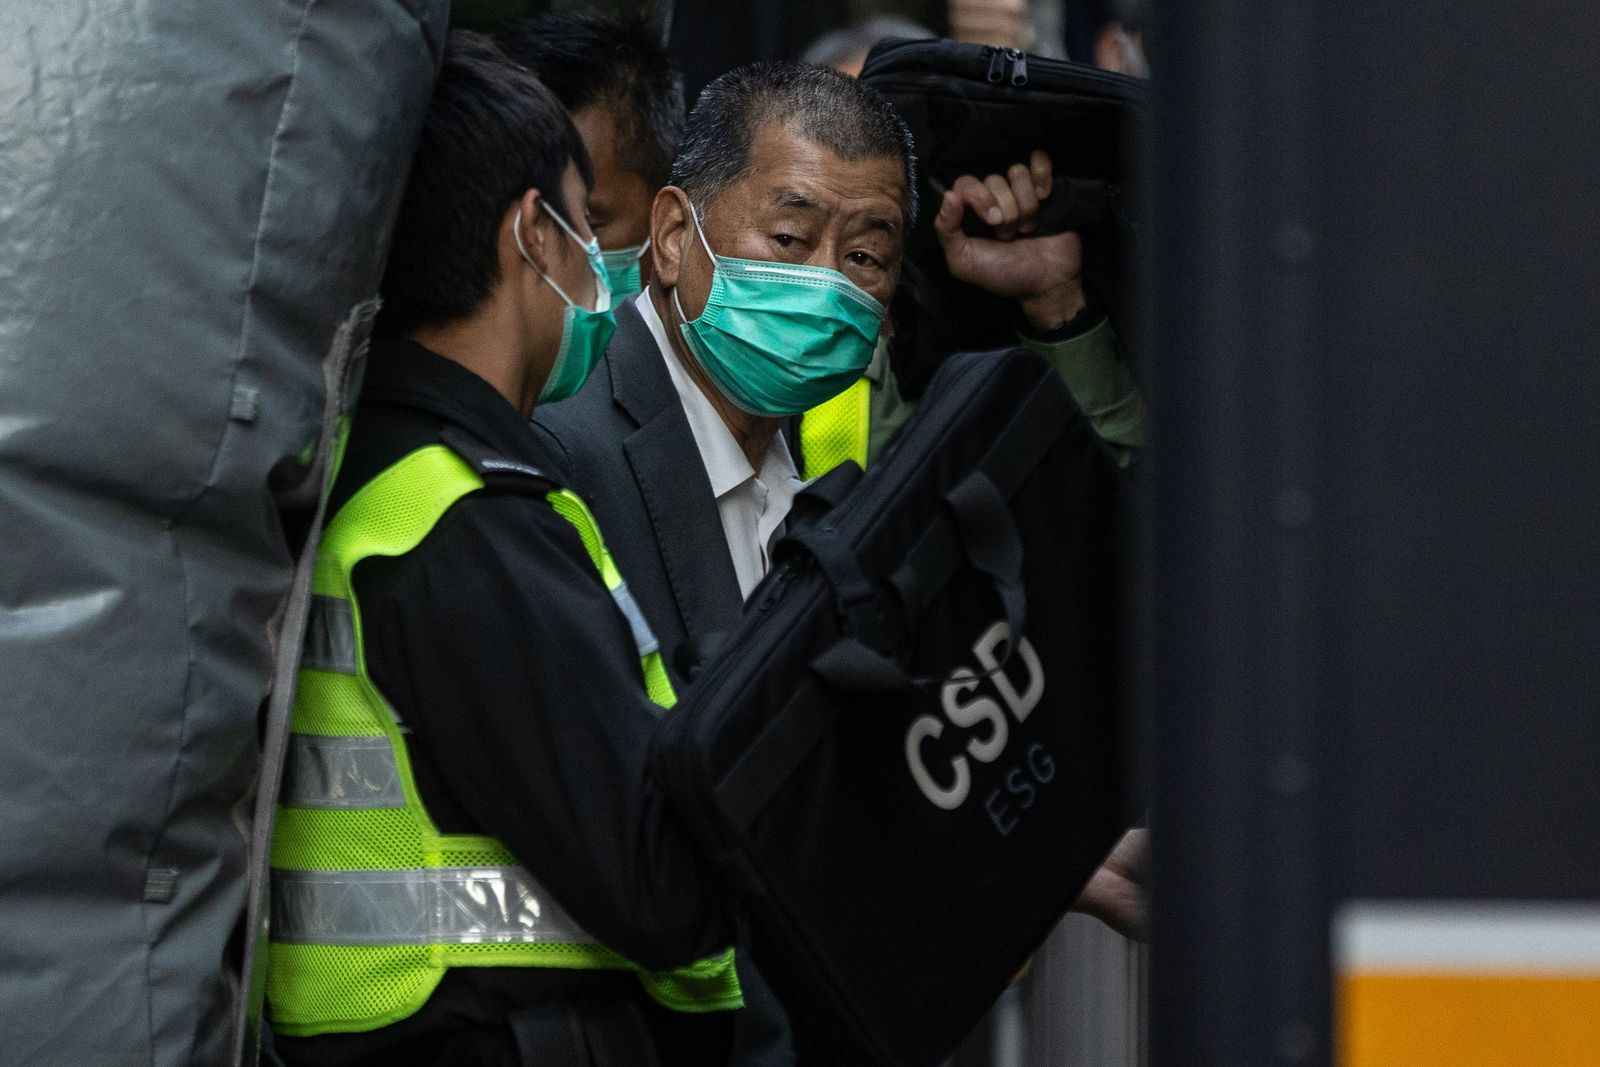 Jimmy Lai leaves the Court of Final Appeal in Hong Kong, China - 01 Feb 2021